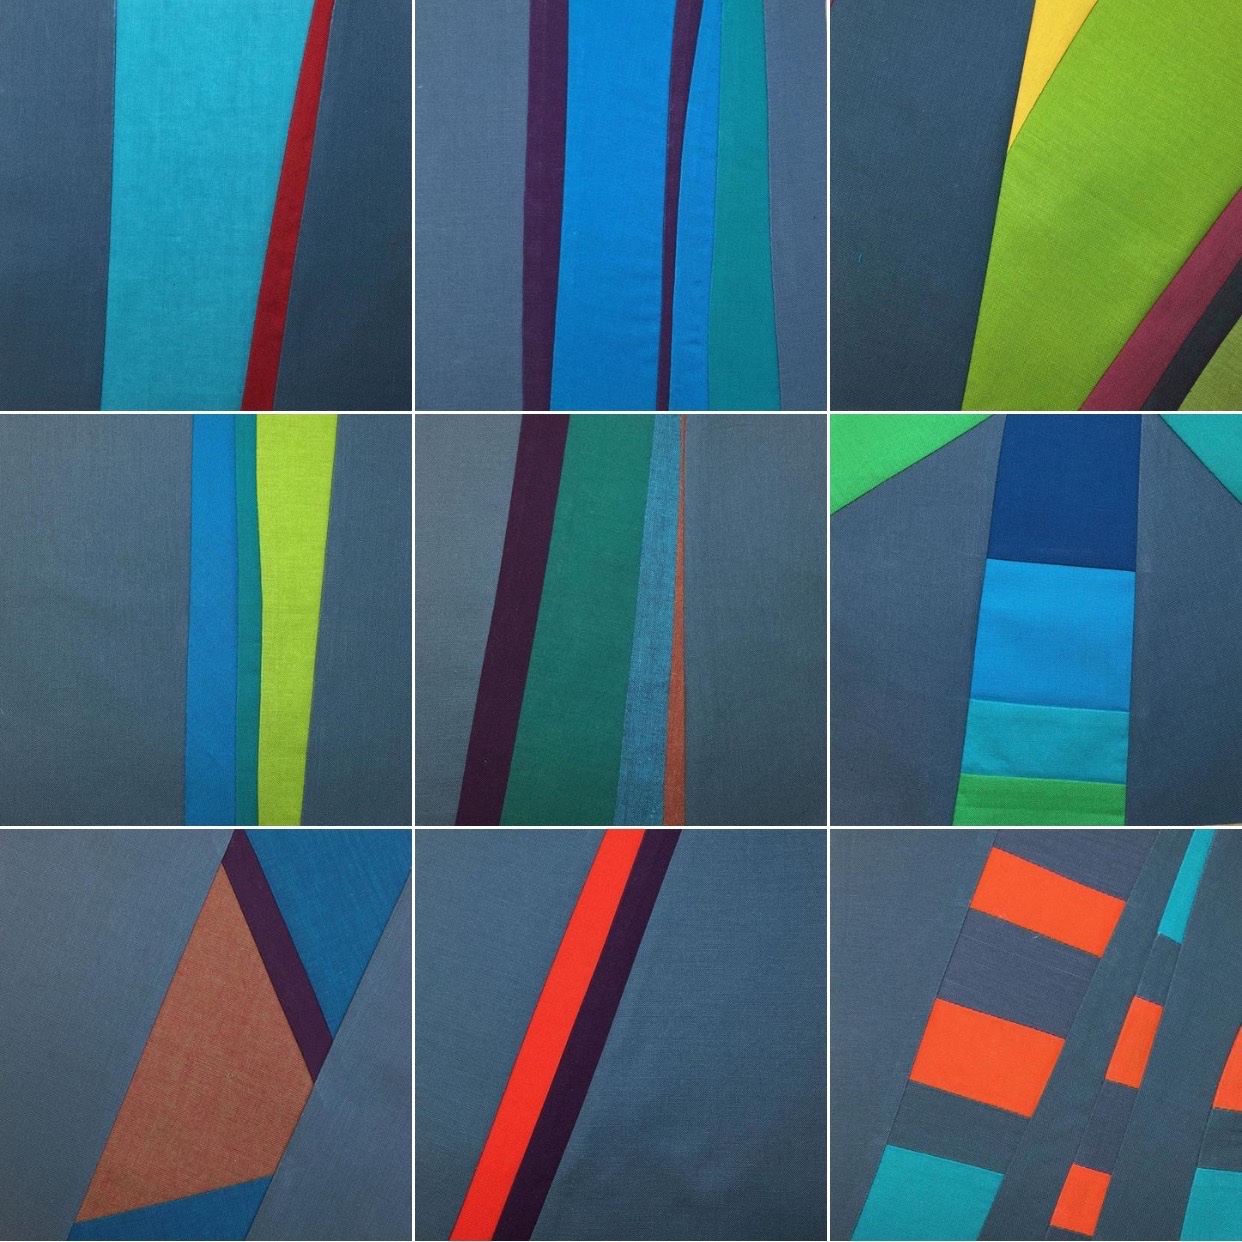 Nine squares in the  Bits and Pieces of 2015 series, 2016.  6 inches square each. Cotton fabric.